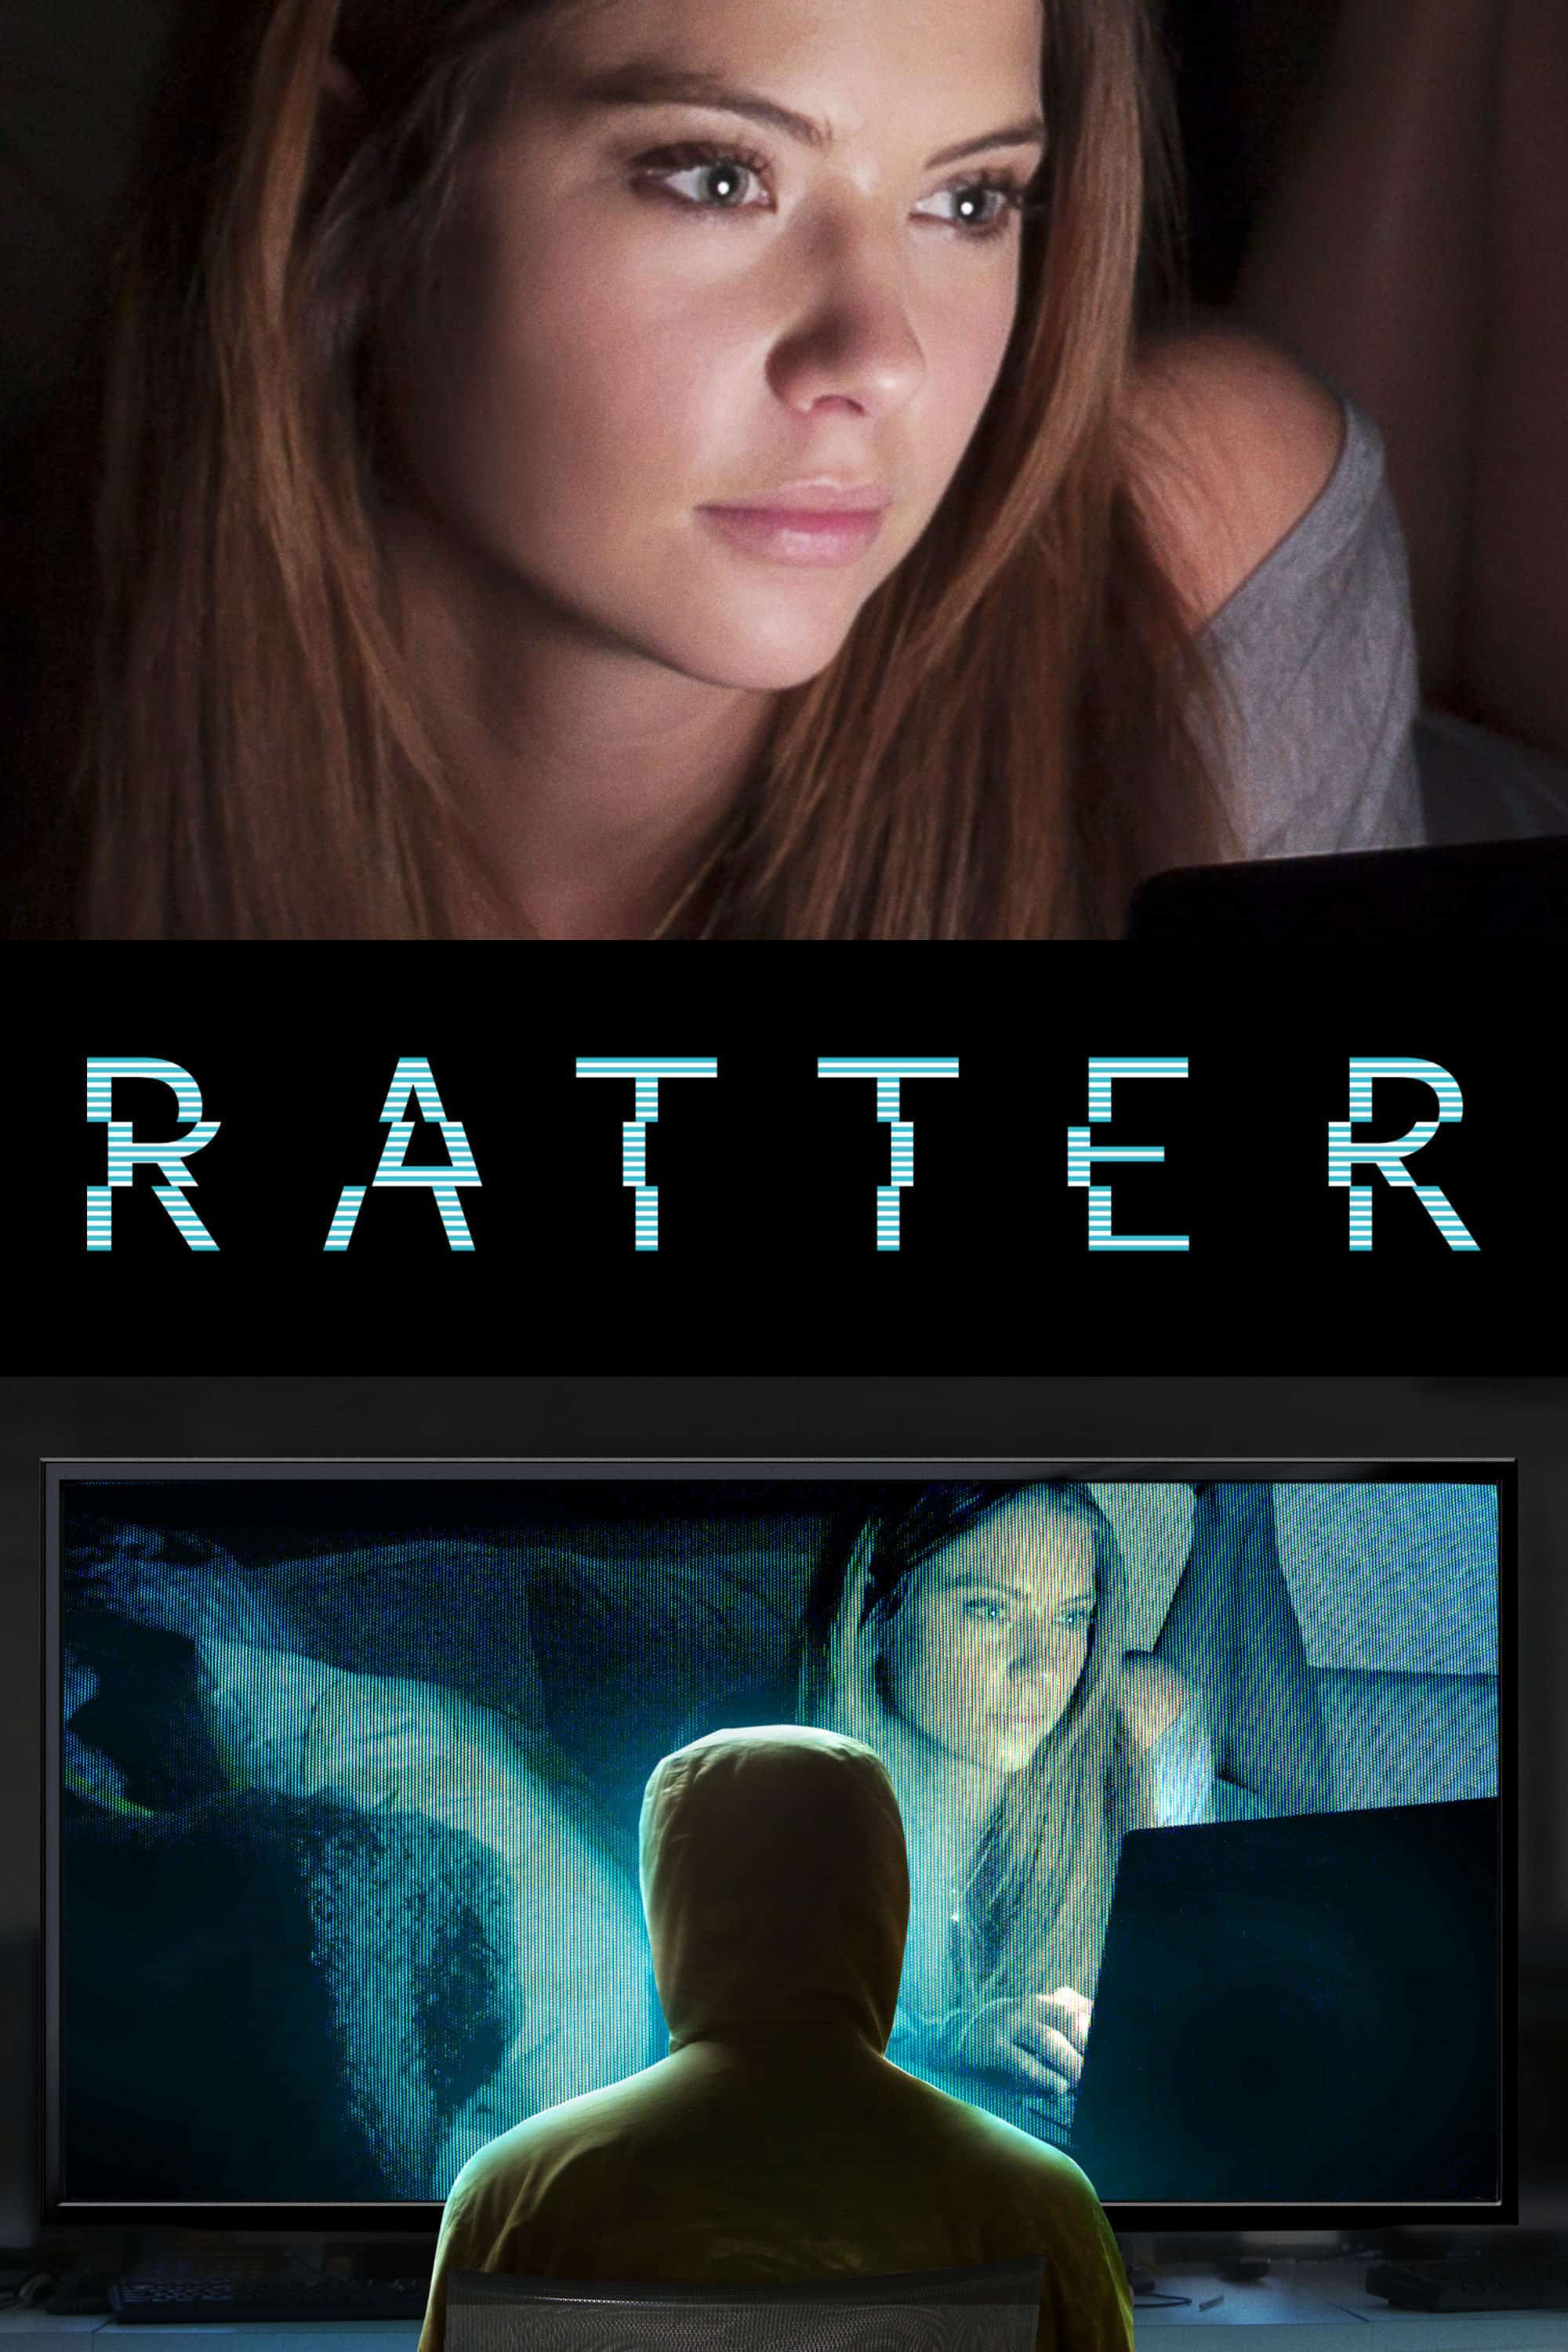 Ratter, 2015